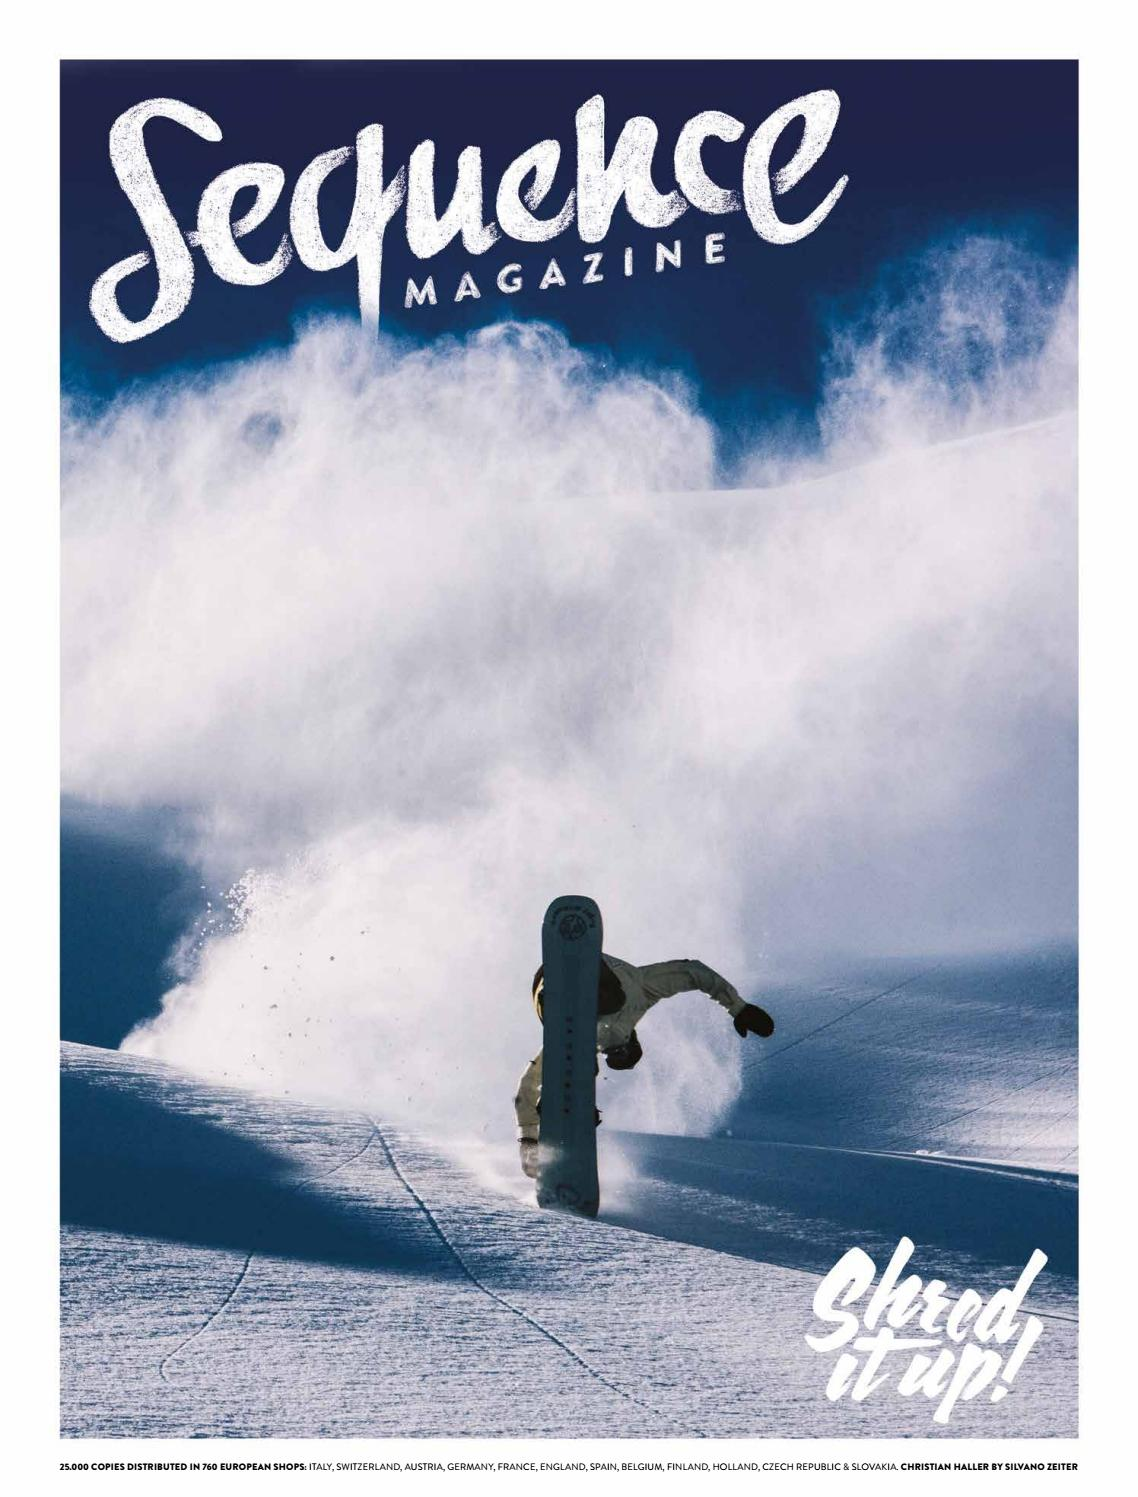 Sequence Magazine 60 En by Hand Communication issuu